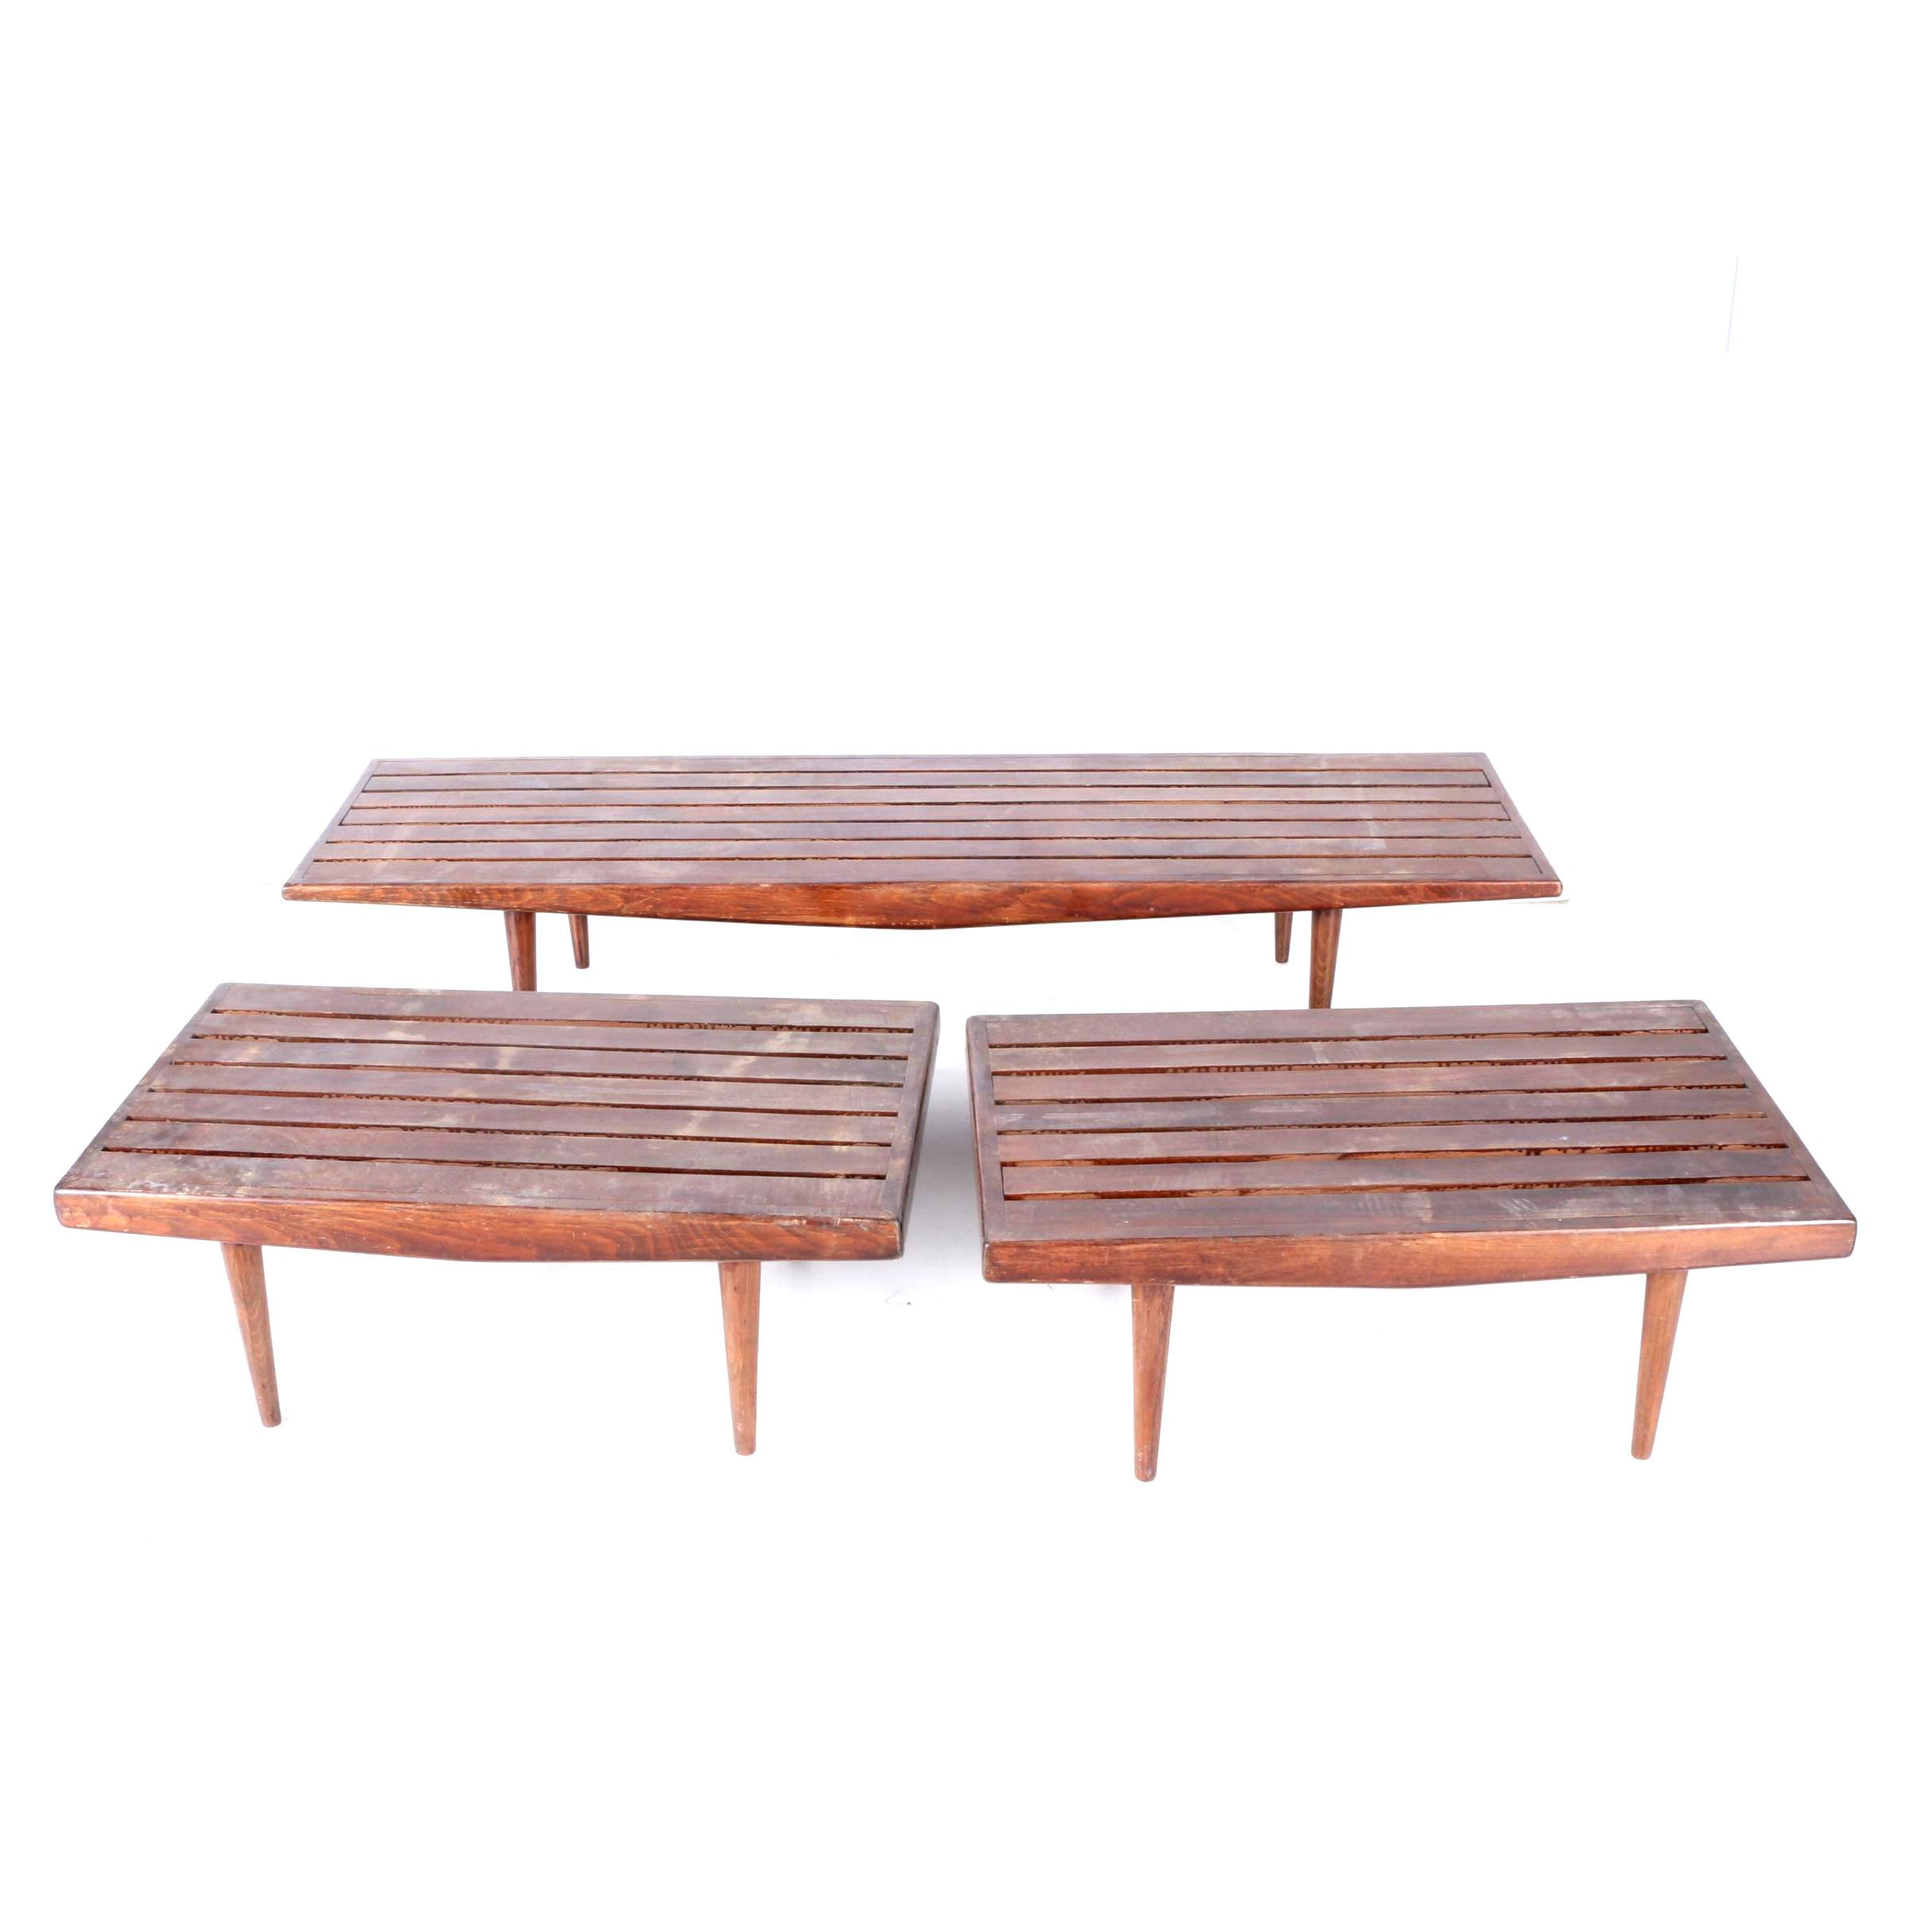 Three Mid Century Modern Walnut-Finished Tables